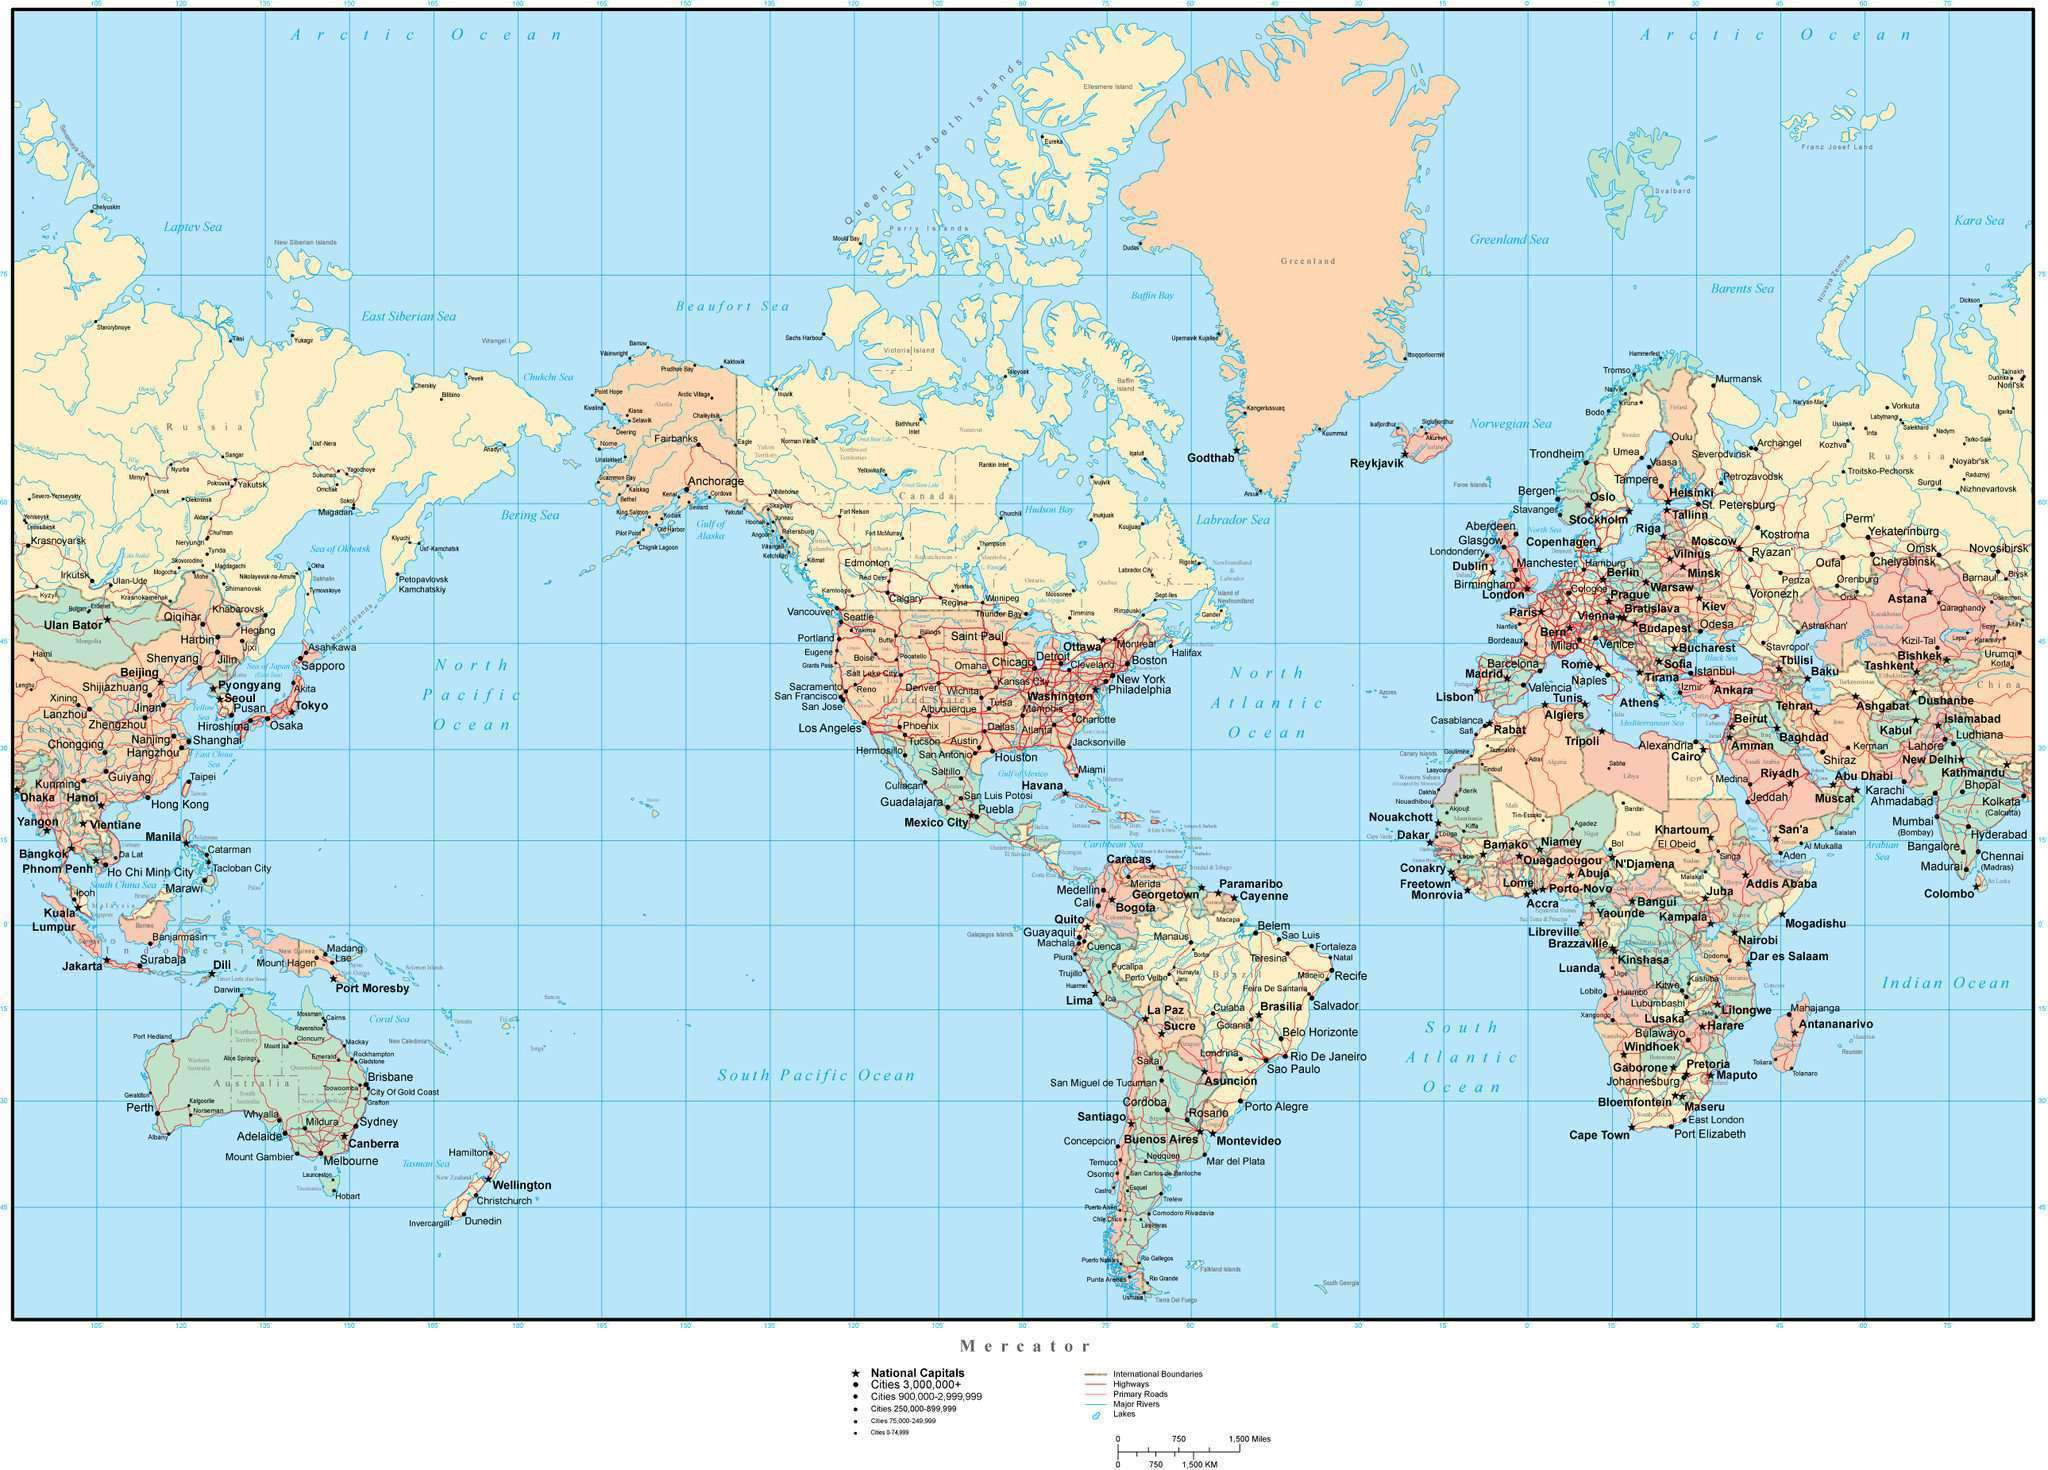 Picture of: World Map With States And Provinces Adobe Illustrator